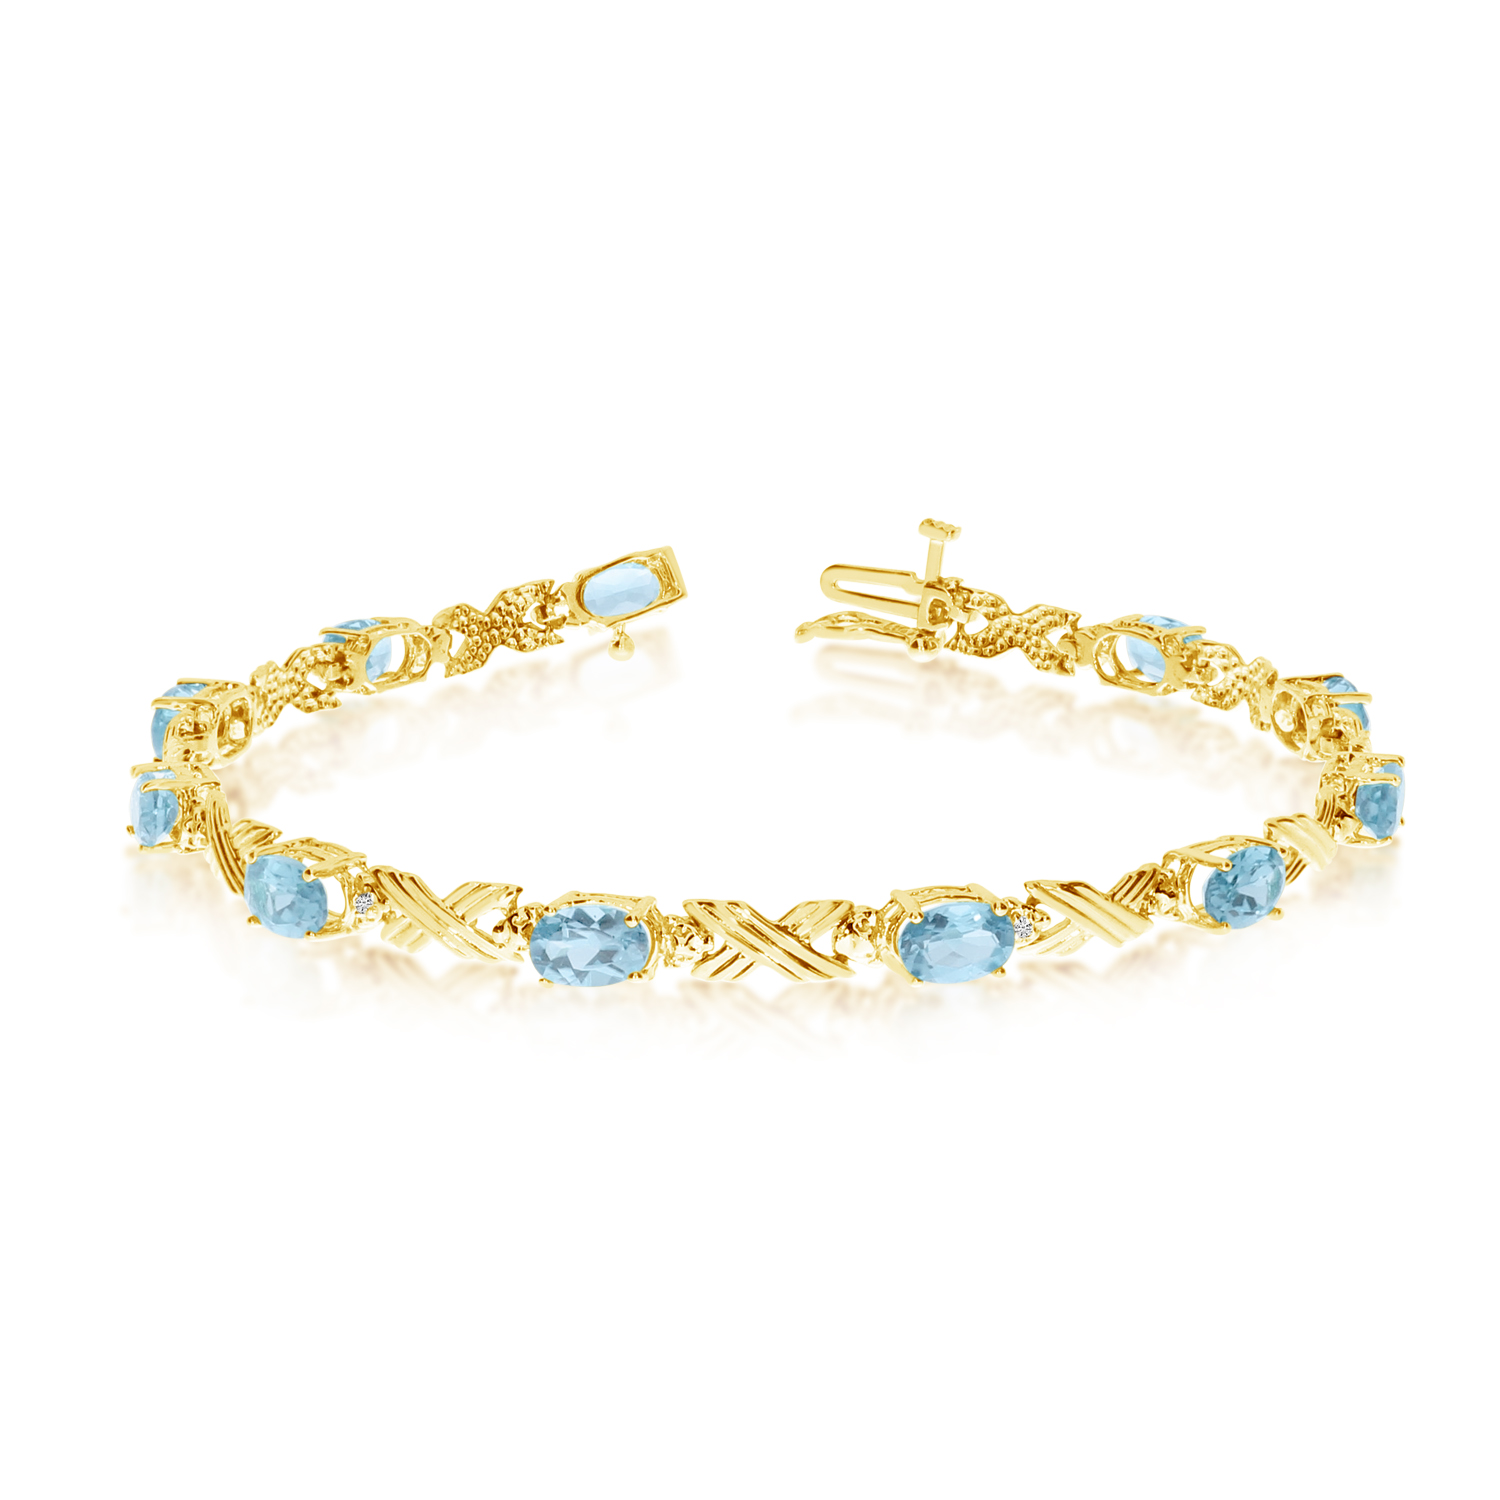 14K Yellow Gold Oval Aquamarine and Diamond Bracelet by LCD